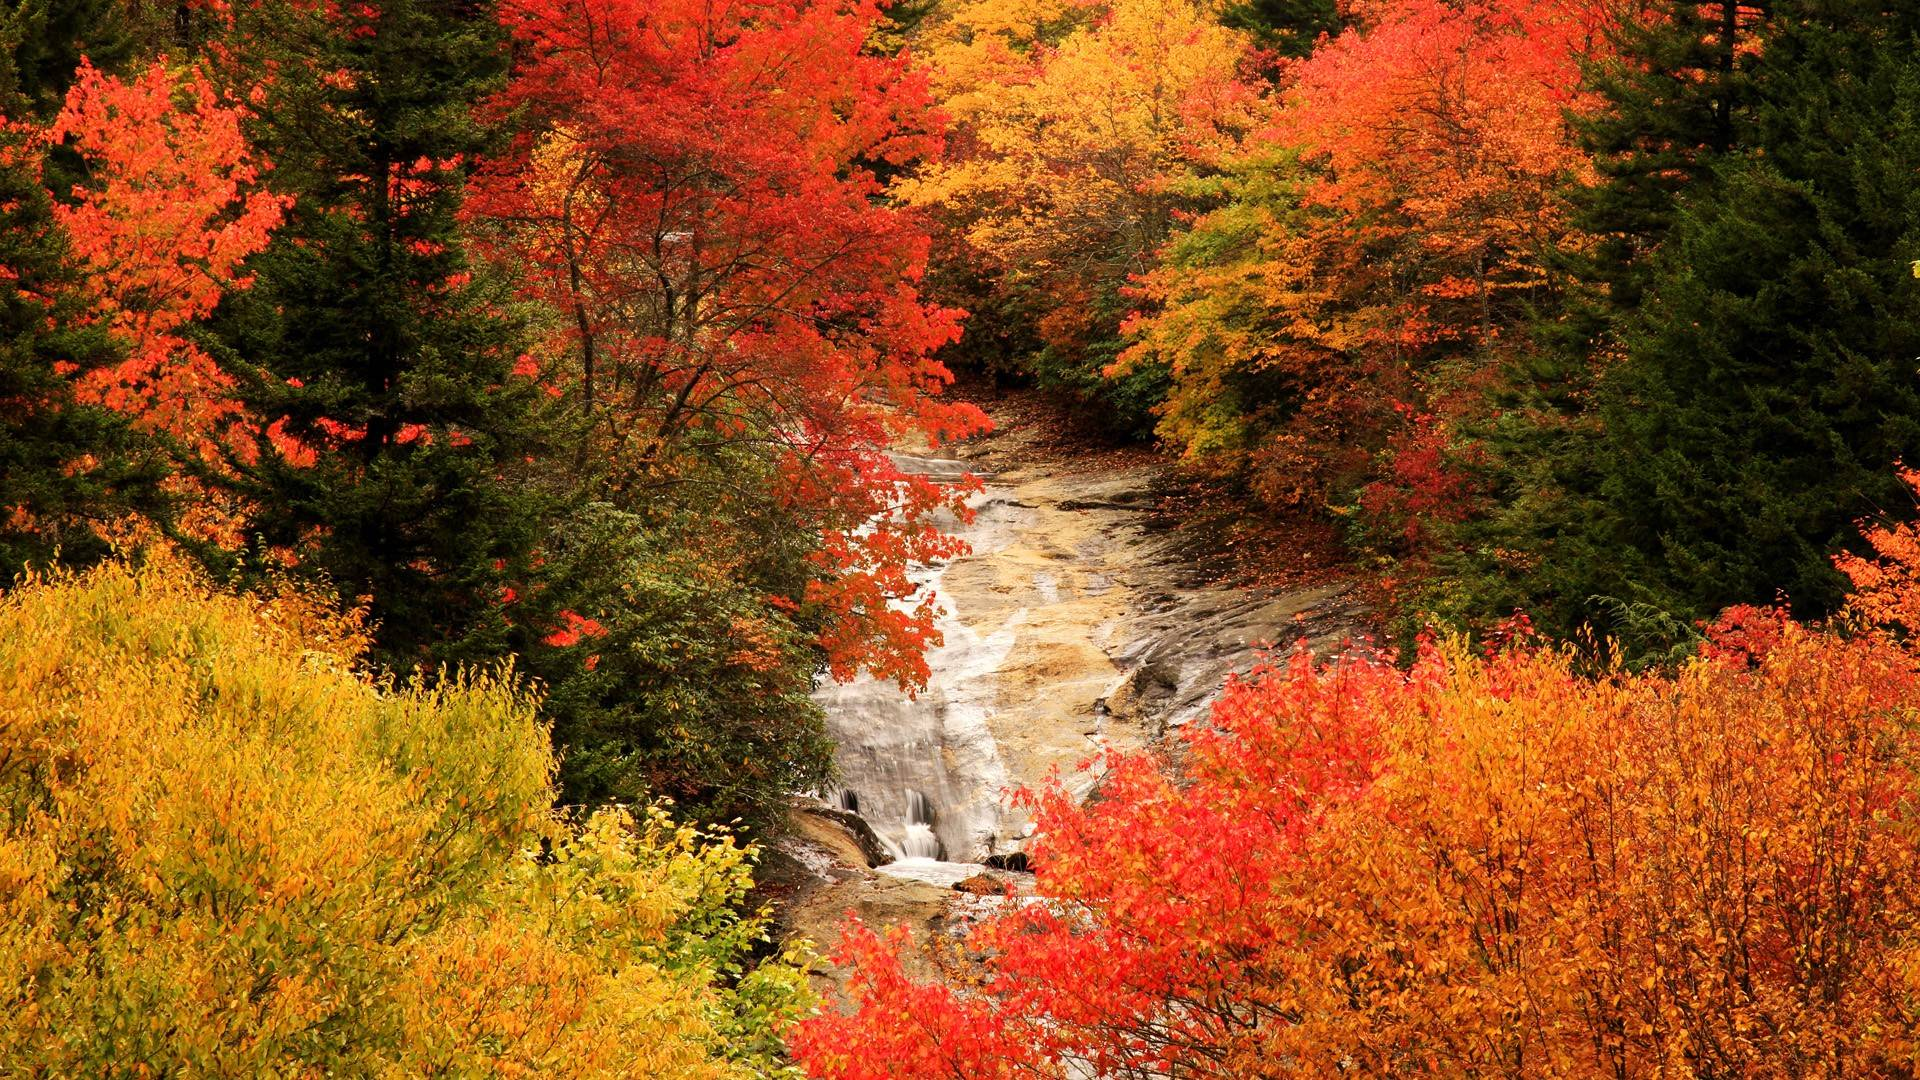 Hd 1080p Fall Wallpaper 79 Images: 1920x1080 Fall Wallpapers